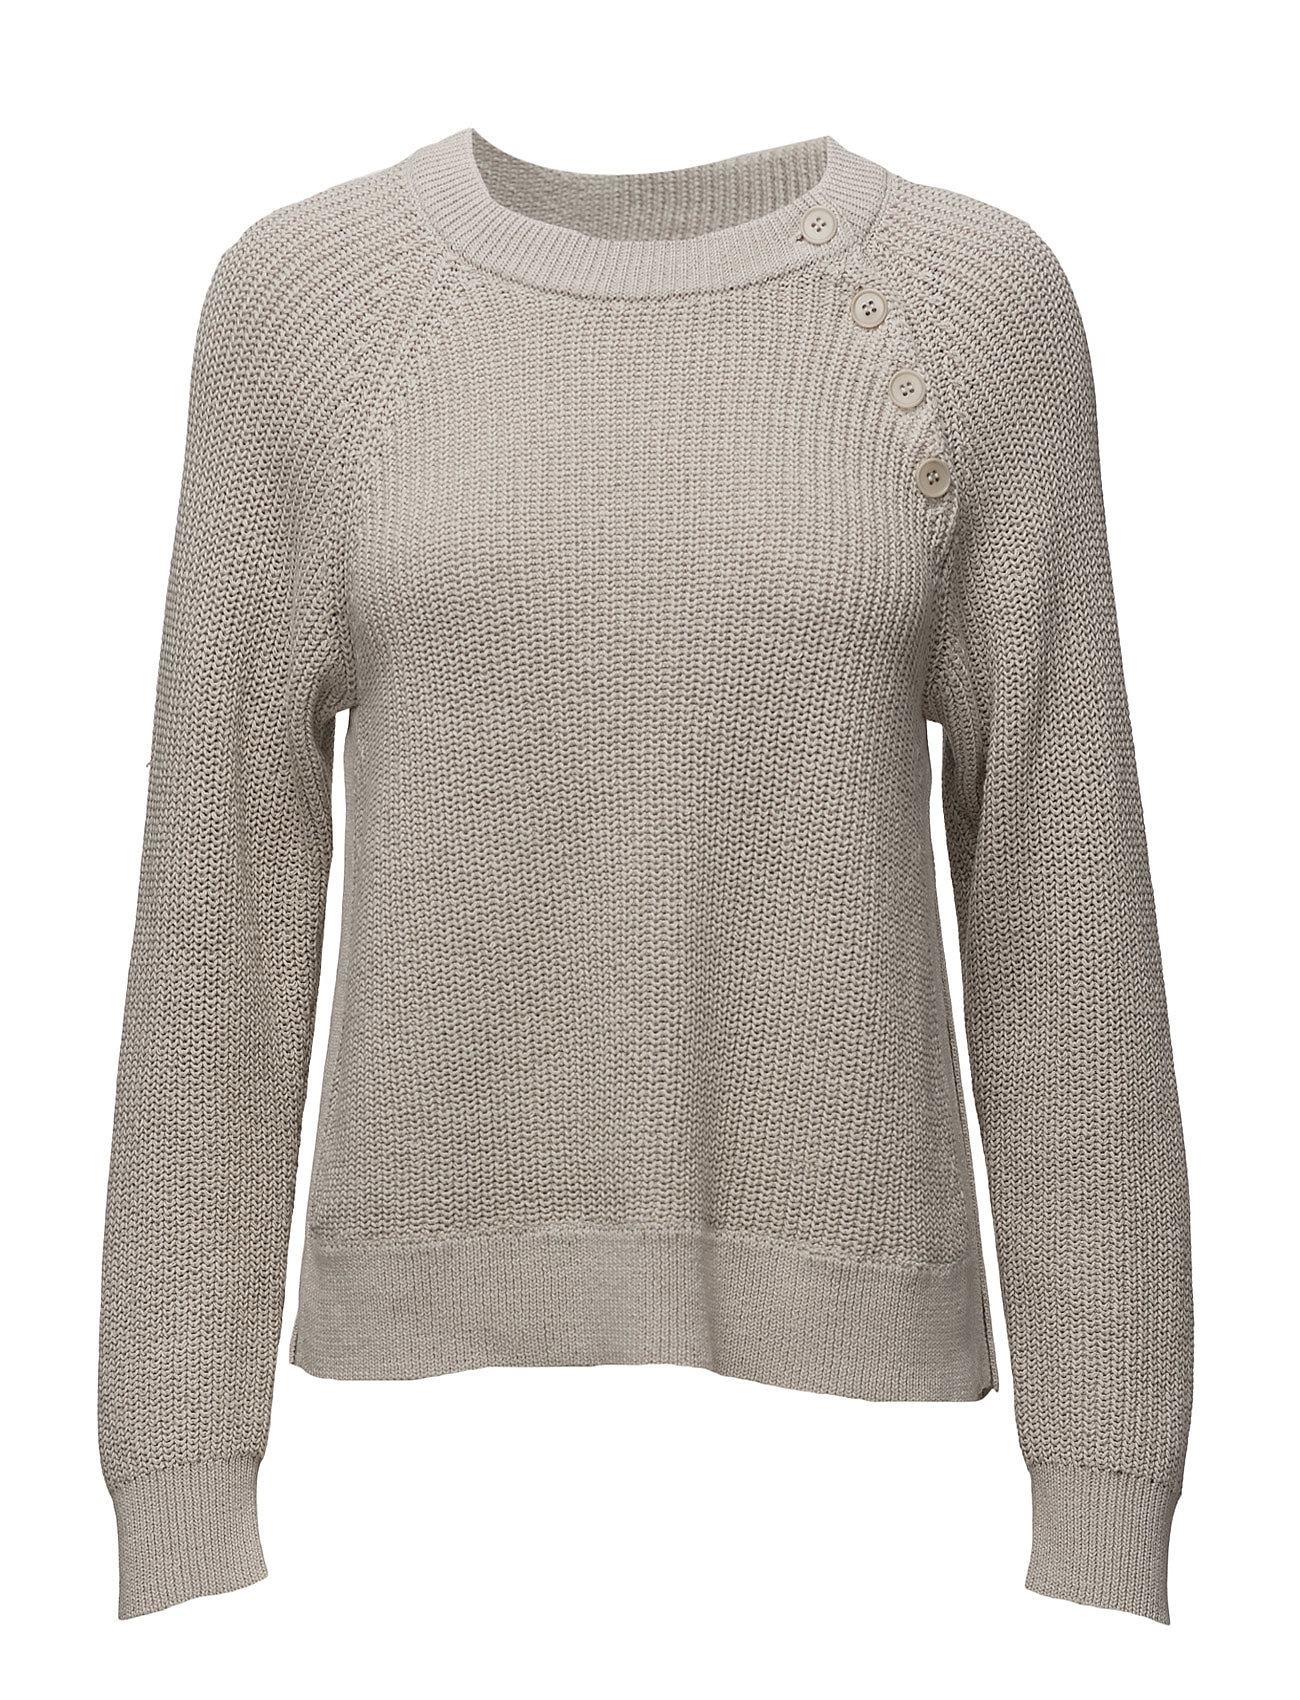 Cotton Mix Slit Pullover Filippa K Sweatshirts til Damer i Linned